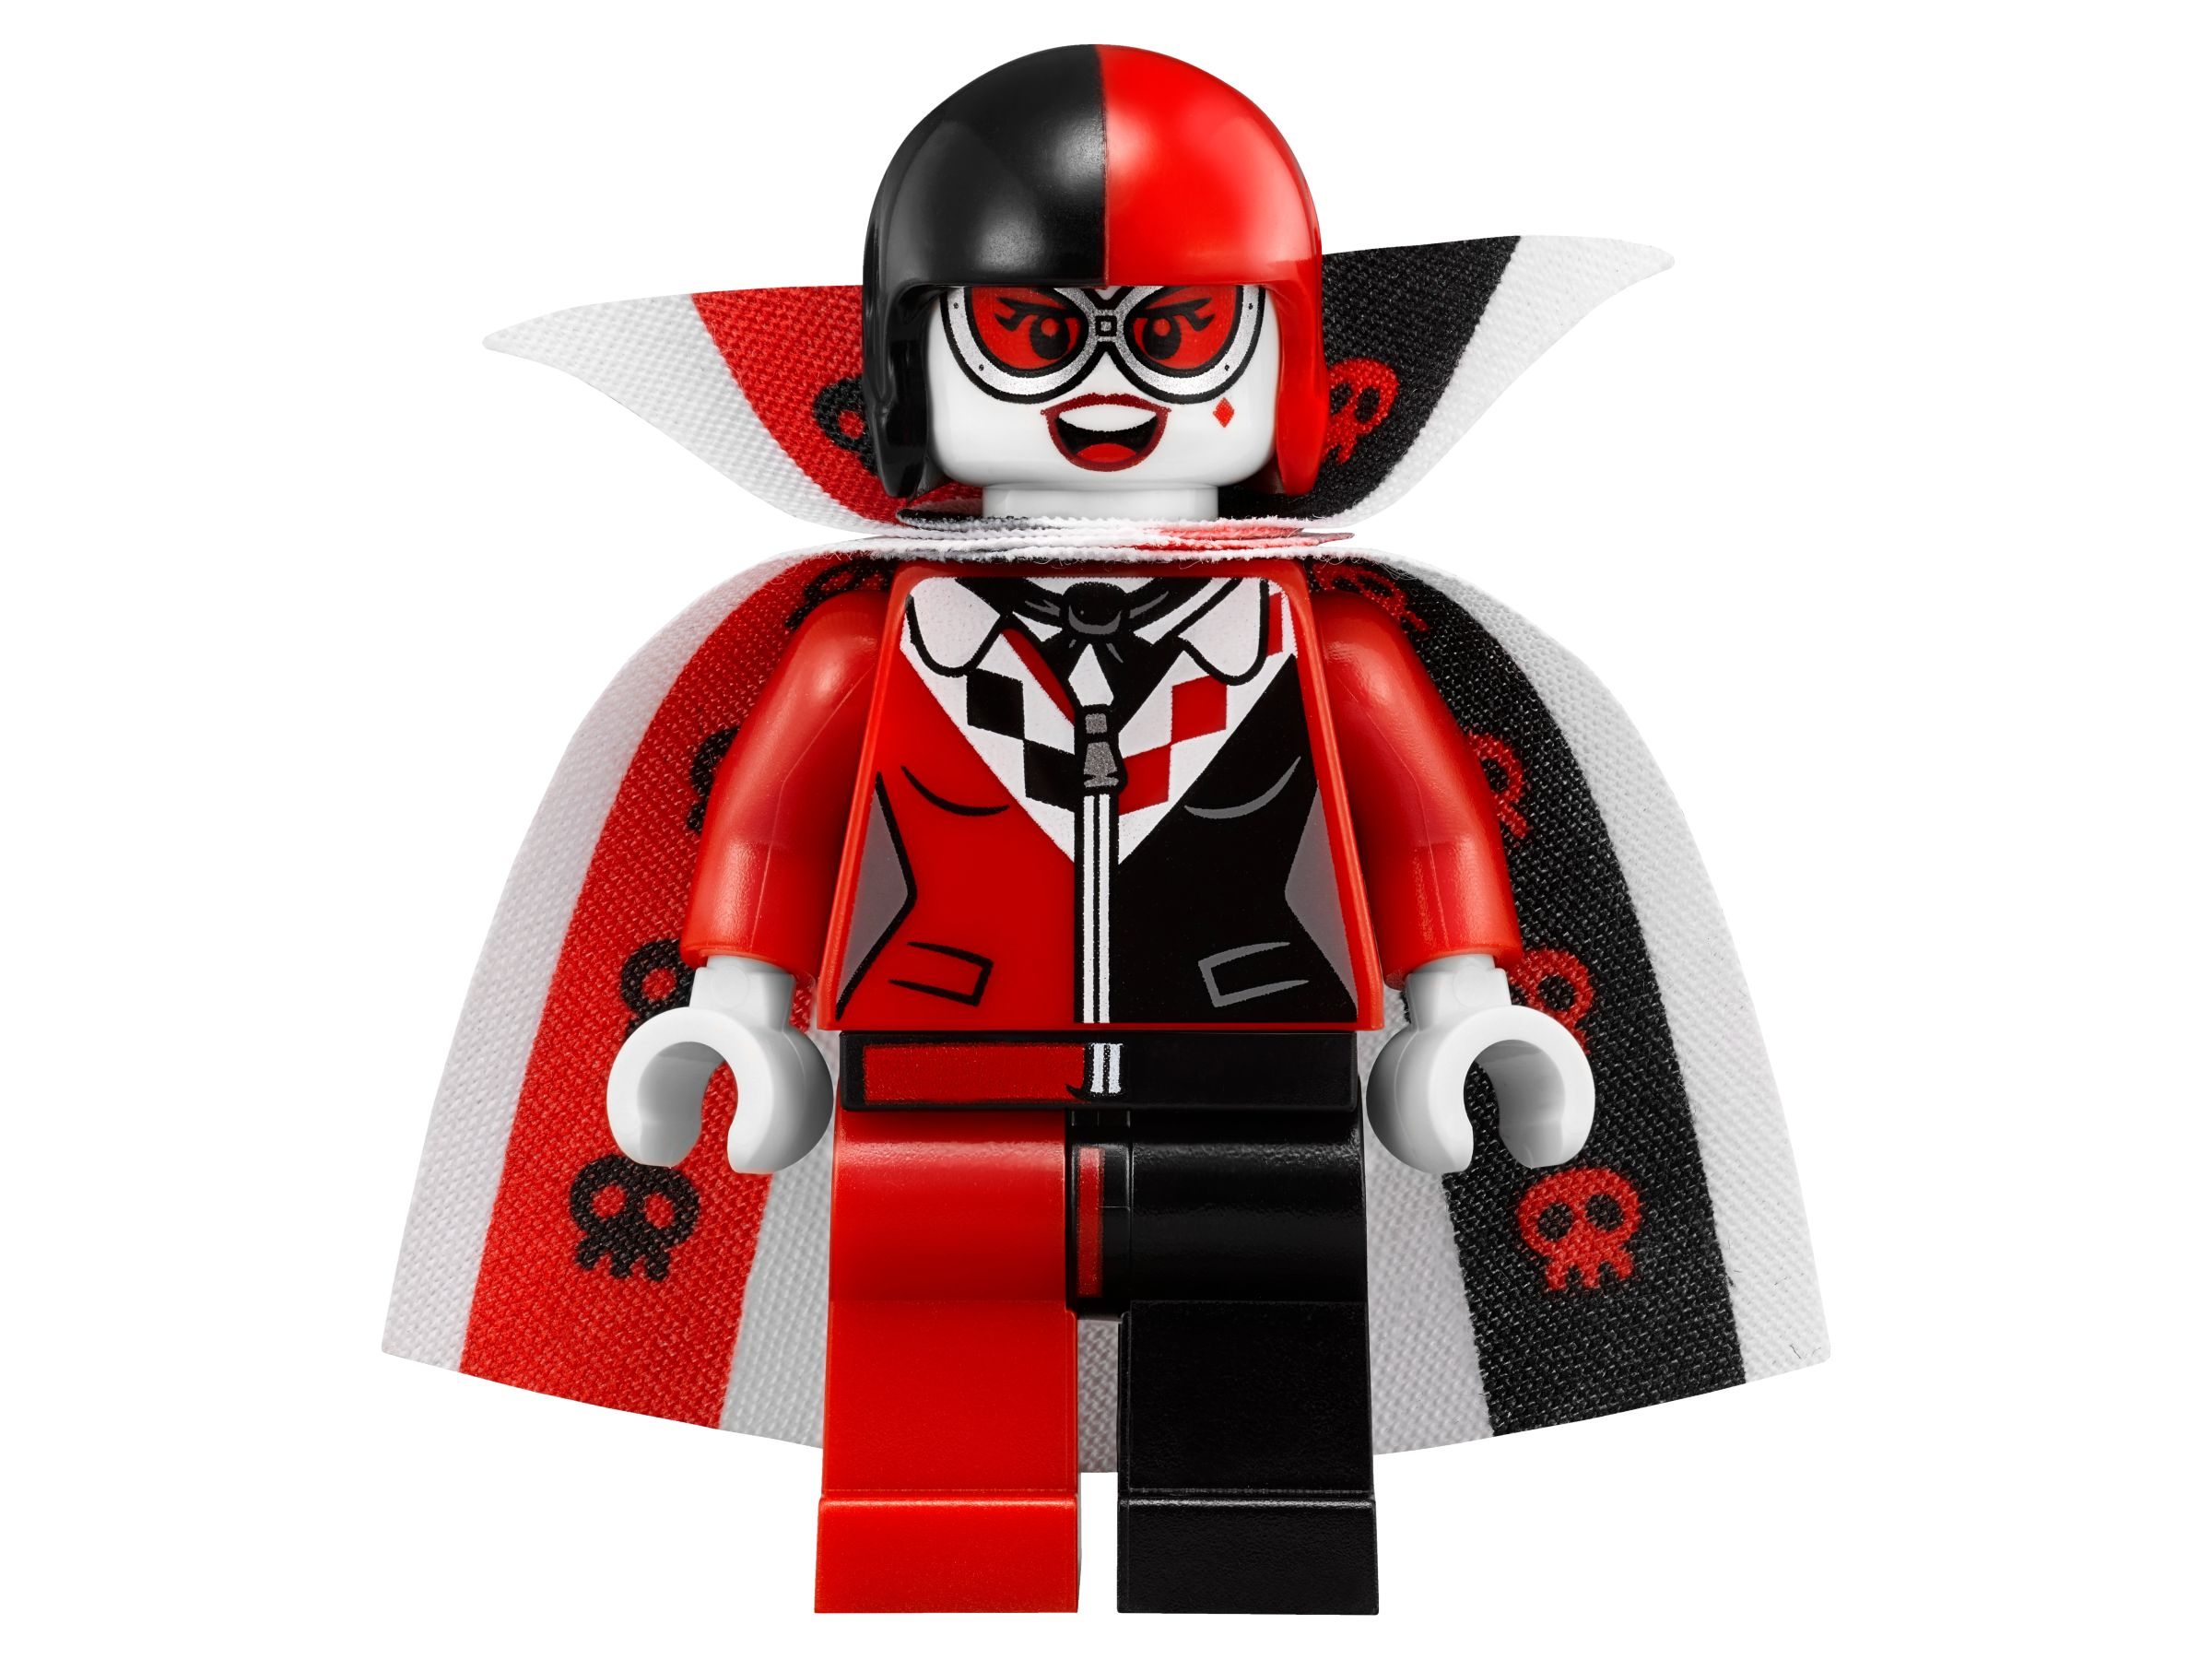 LEGO The LEGO Batman Movie 70921 Harley Quinn Kanonenkugelattacke LEGO_70921_alt6.jpg